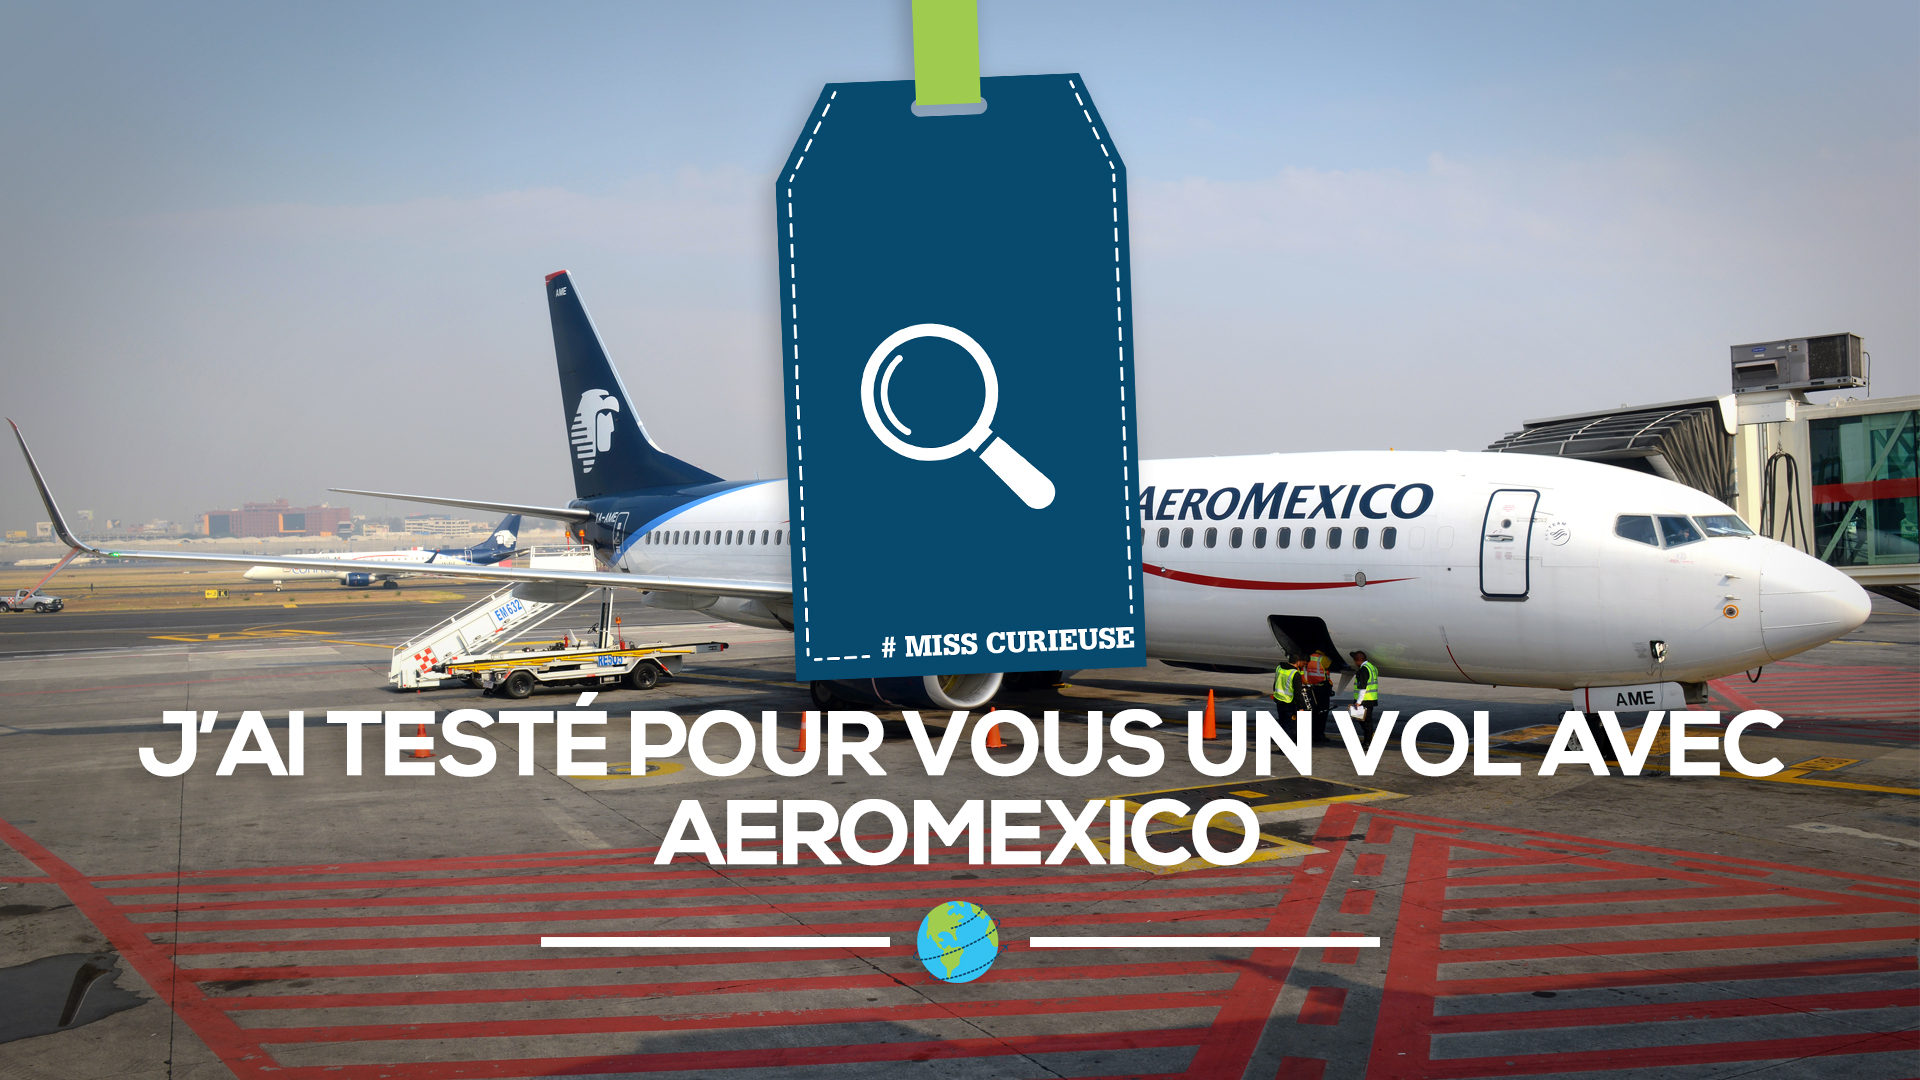 MISS_CURIEUSE_AEROMEXICO_210217